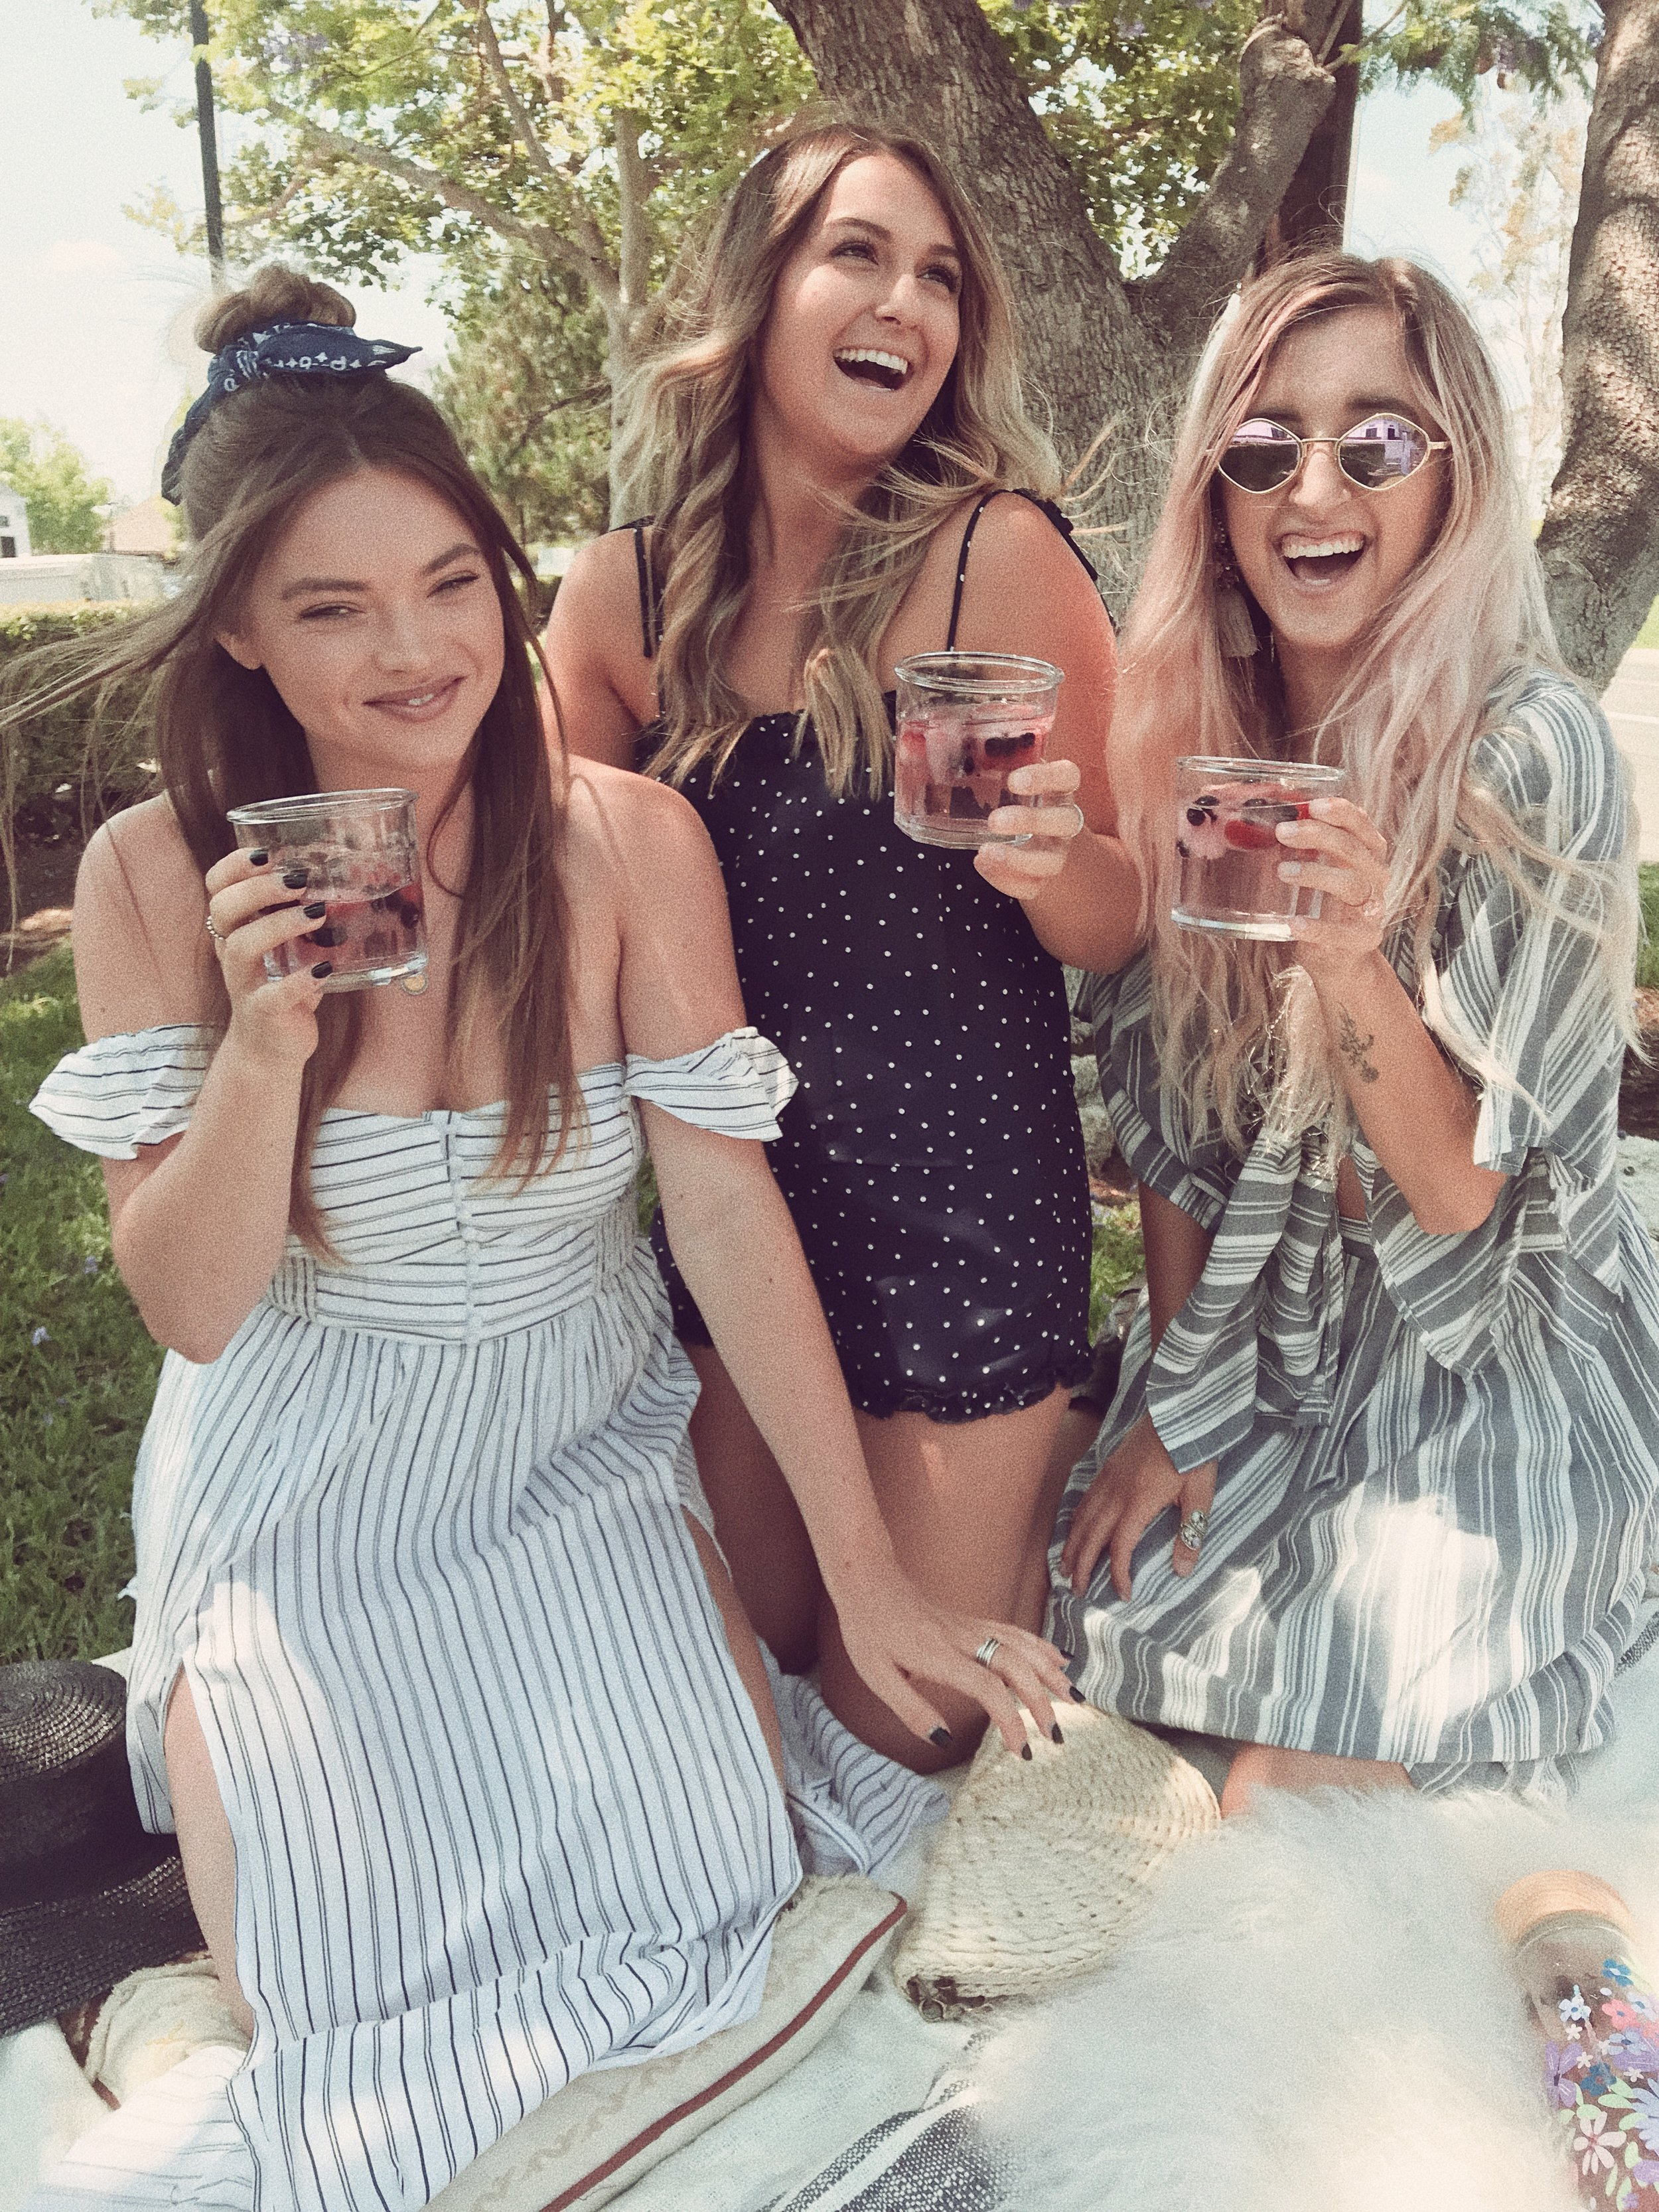 shop our looks here:  Reese Striped Maxi Romper   /  Best Feeling Polka Dot Set   /  American Summer Striped Set